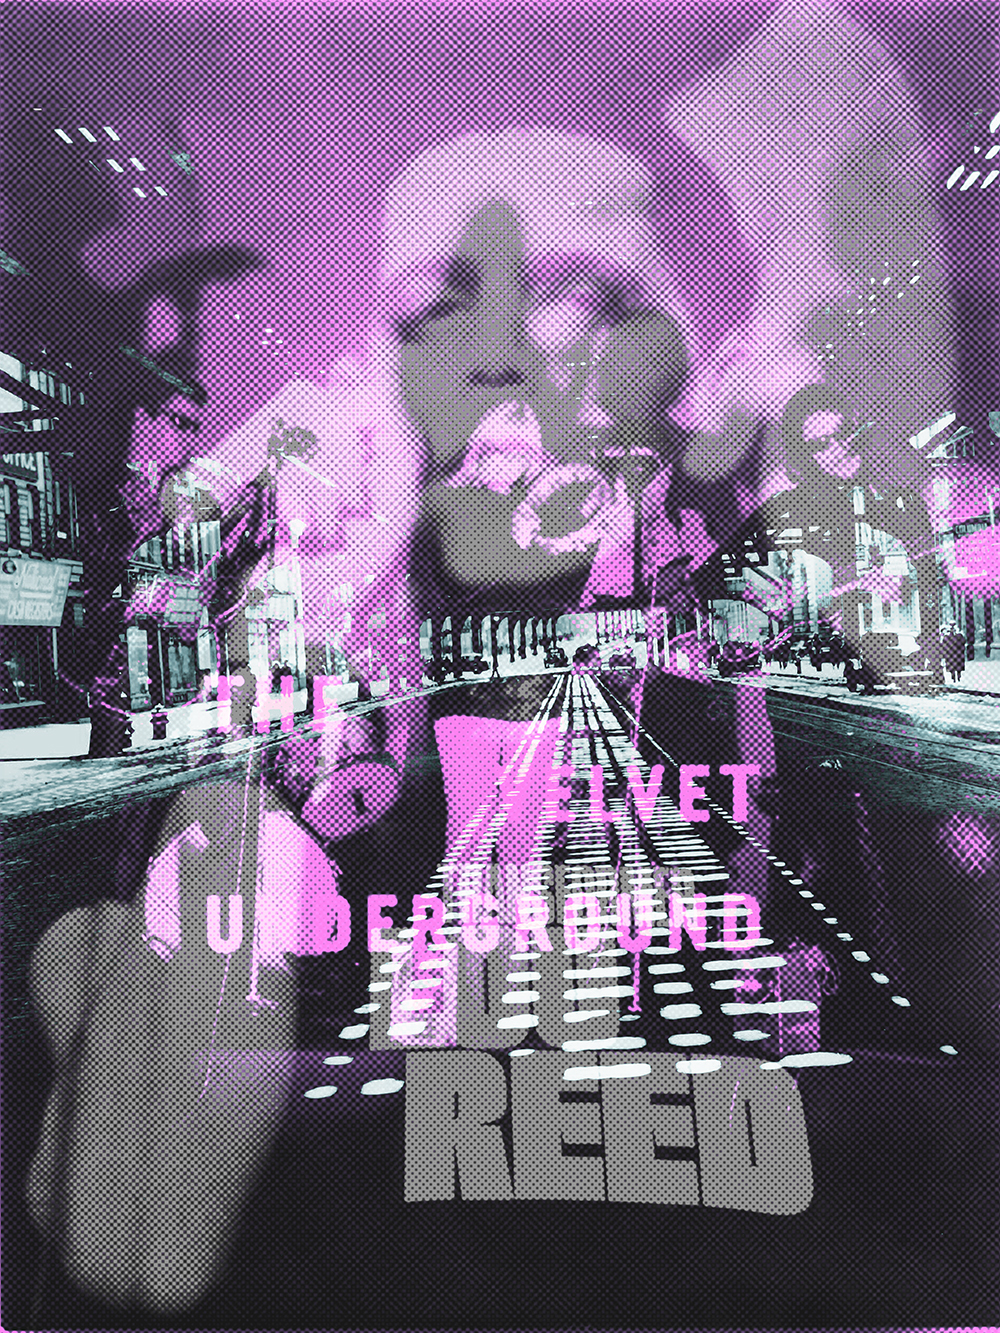 LOU REED VELVET CITY #01